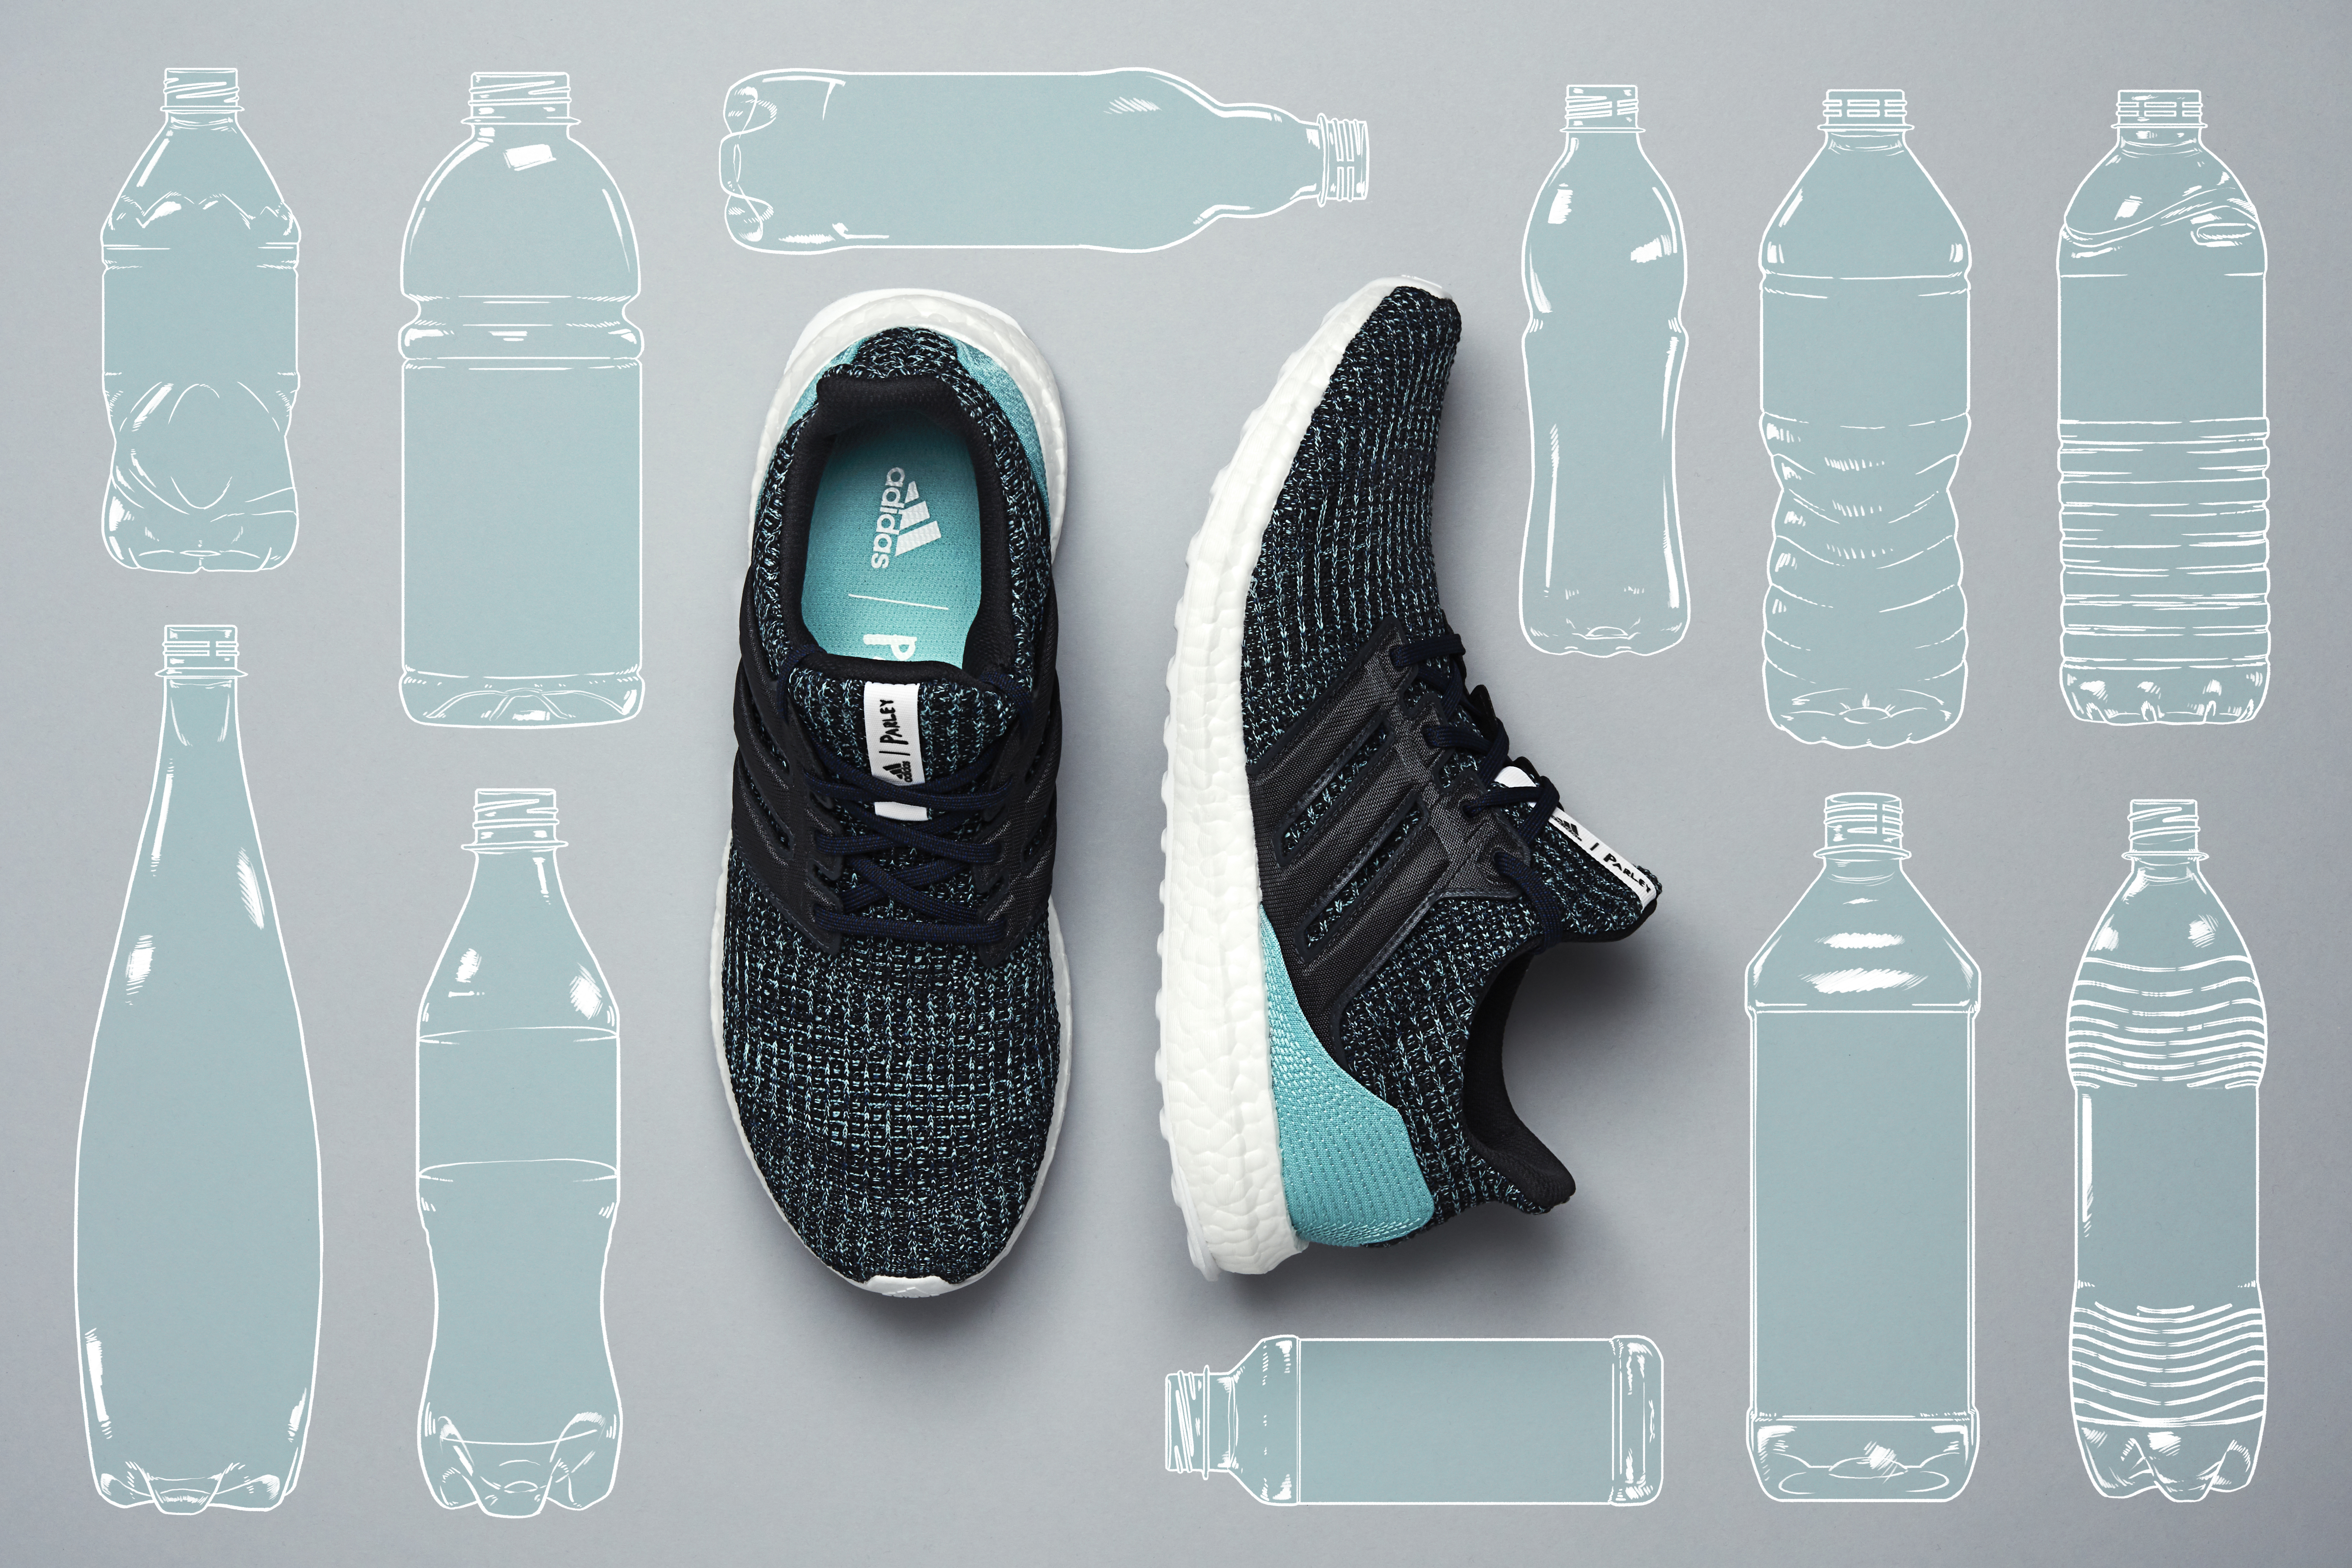 SS18 Parley UltraBOOST